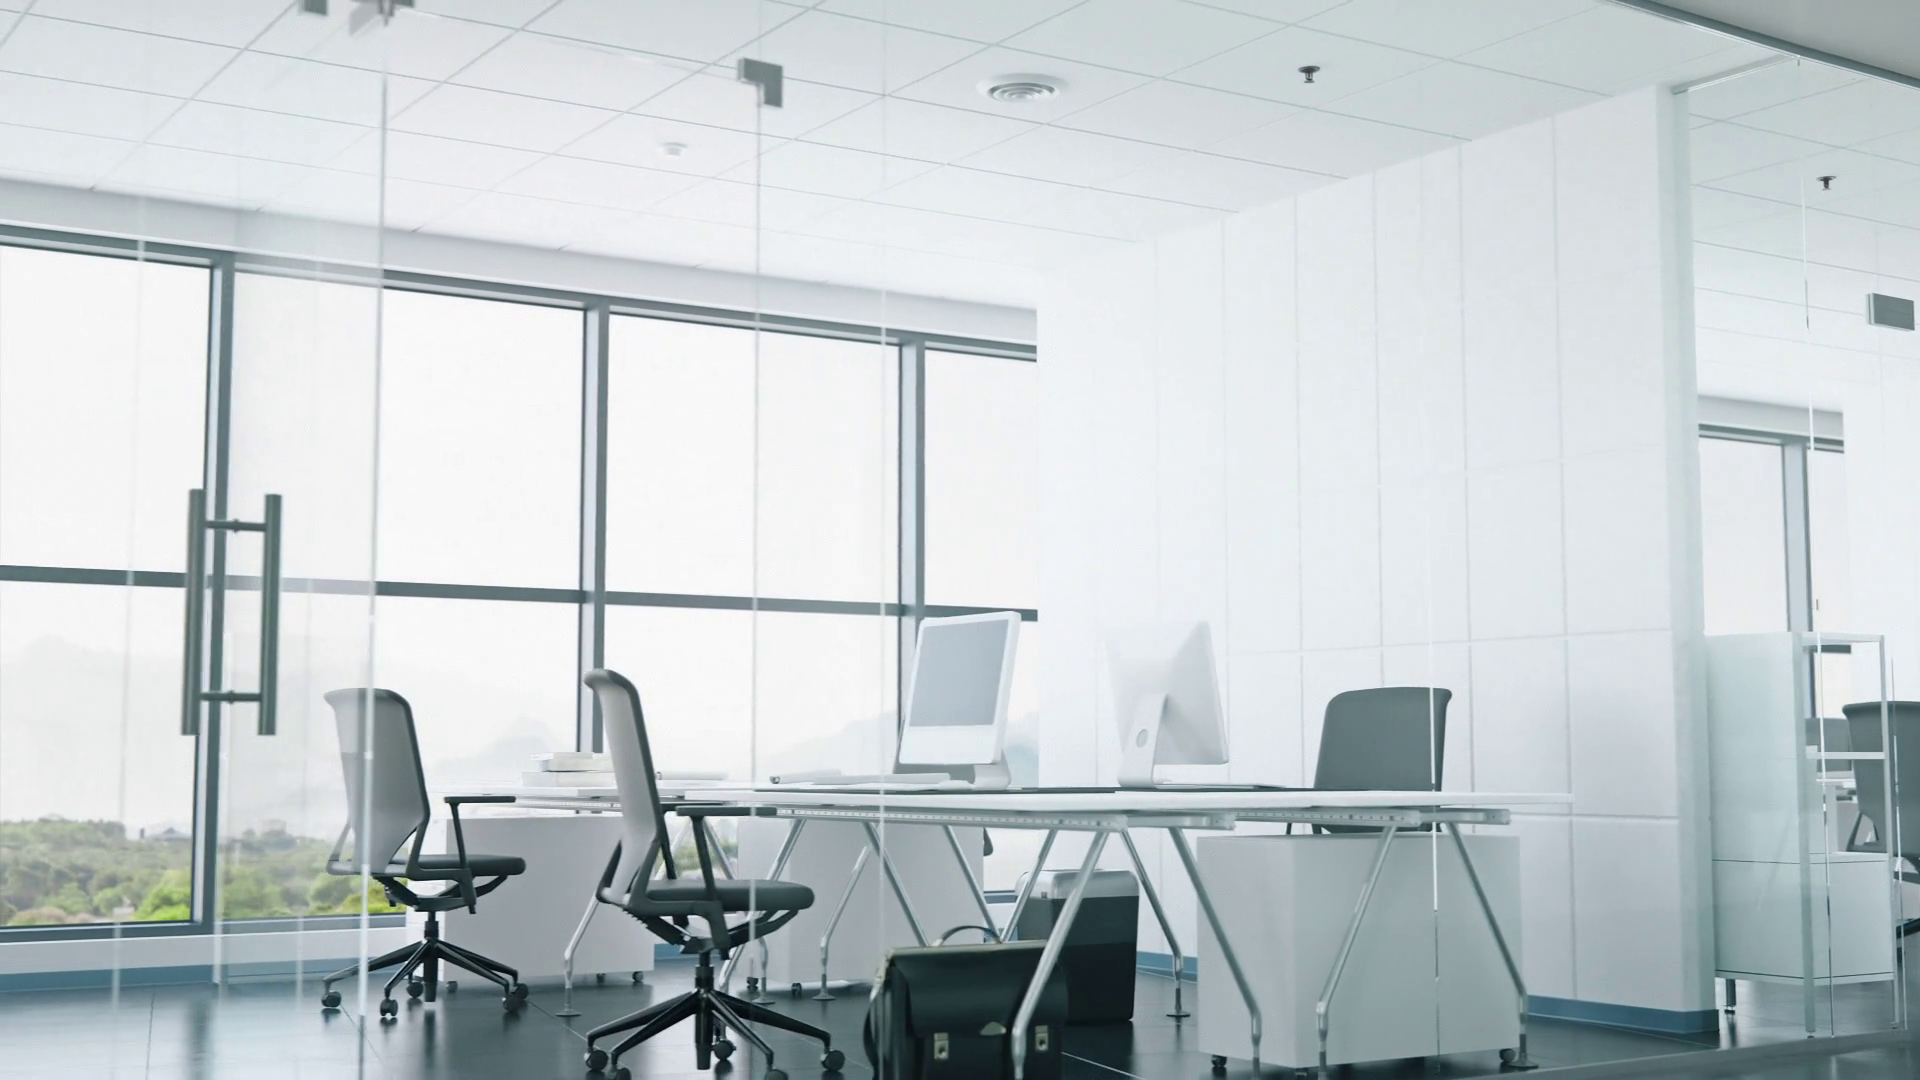 Modern Office Space With Glass Walls Motion Background.